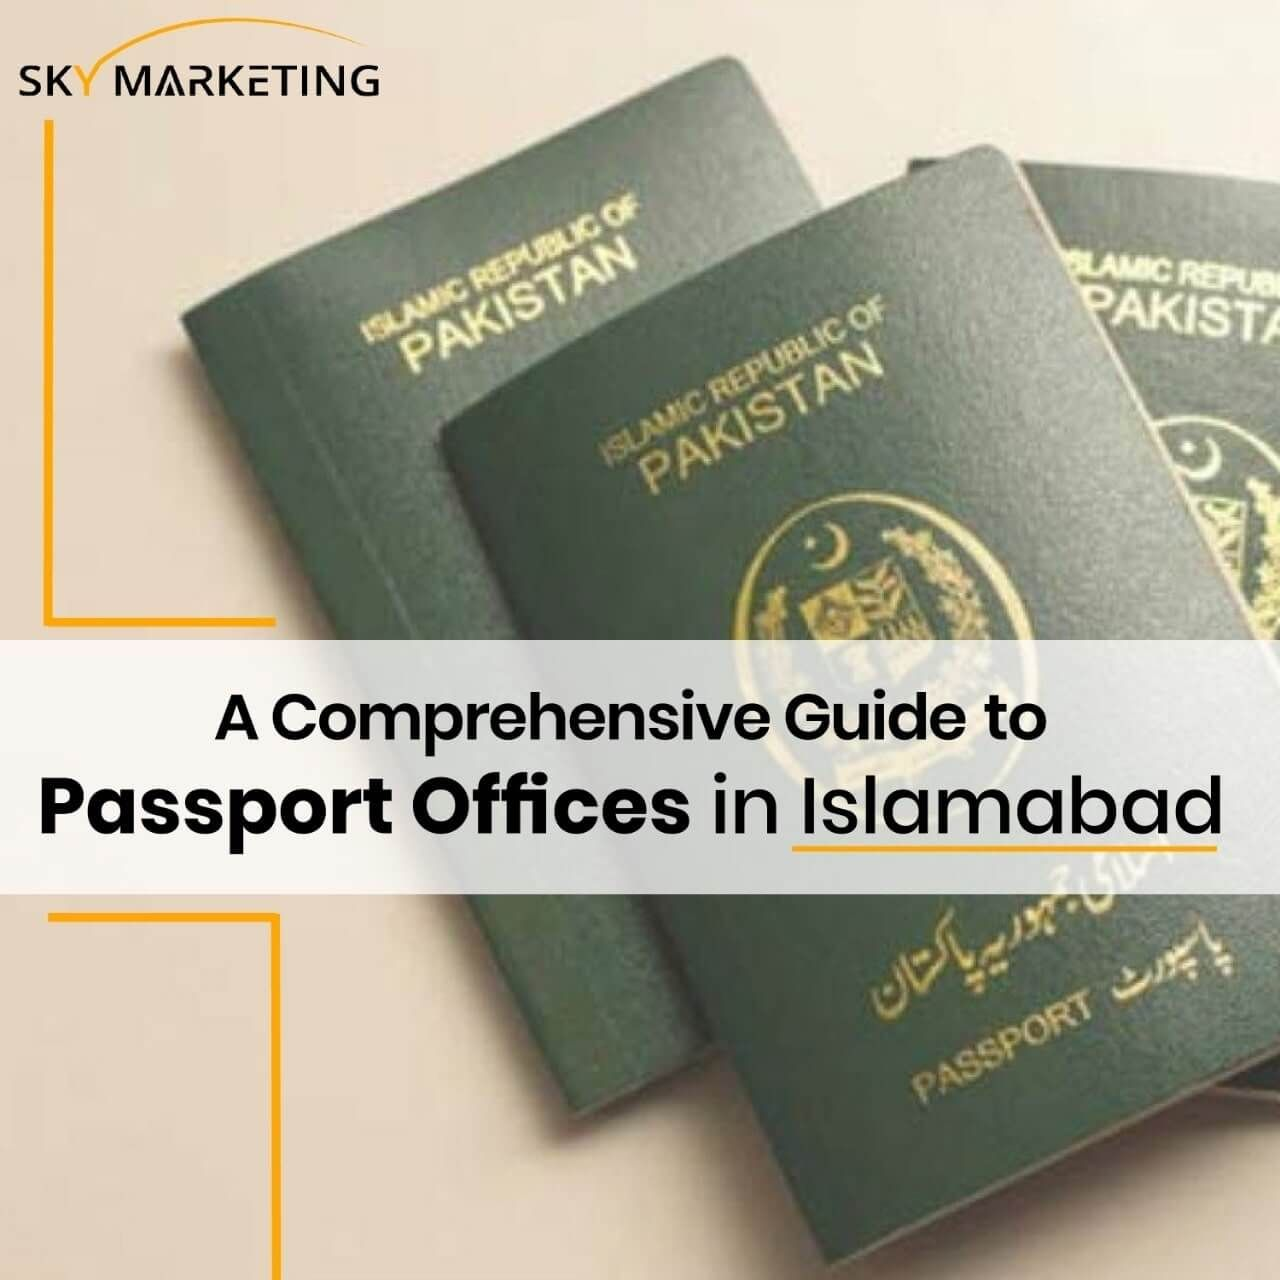 Islamabad Passport Offices Sky Marketing In 2020 Passport Office Passport Application Getting A Passport